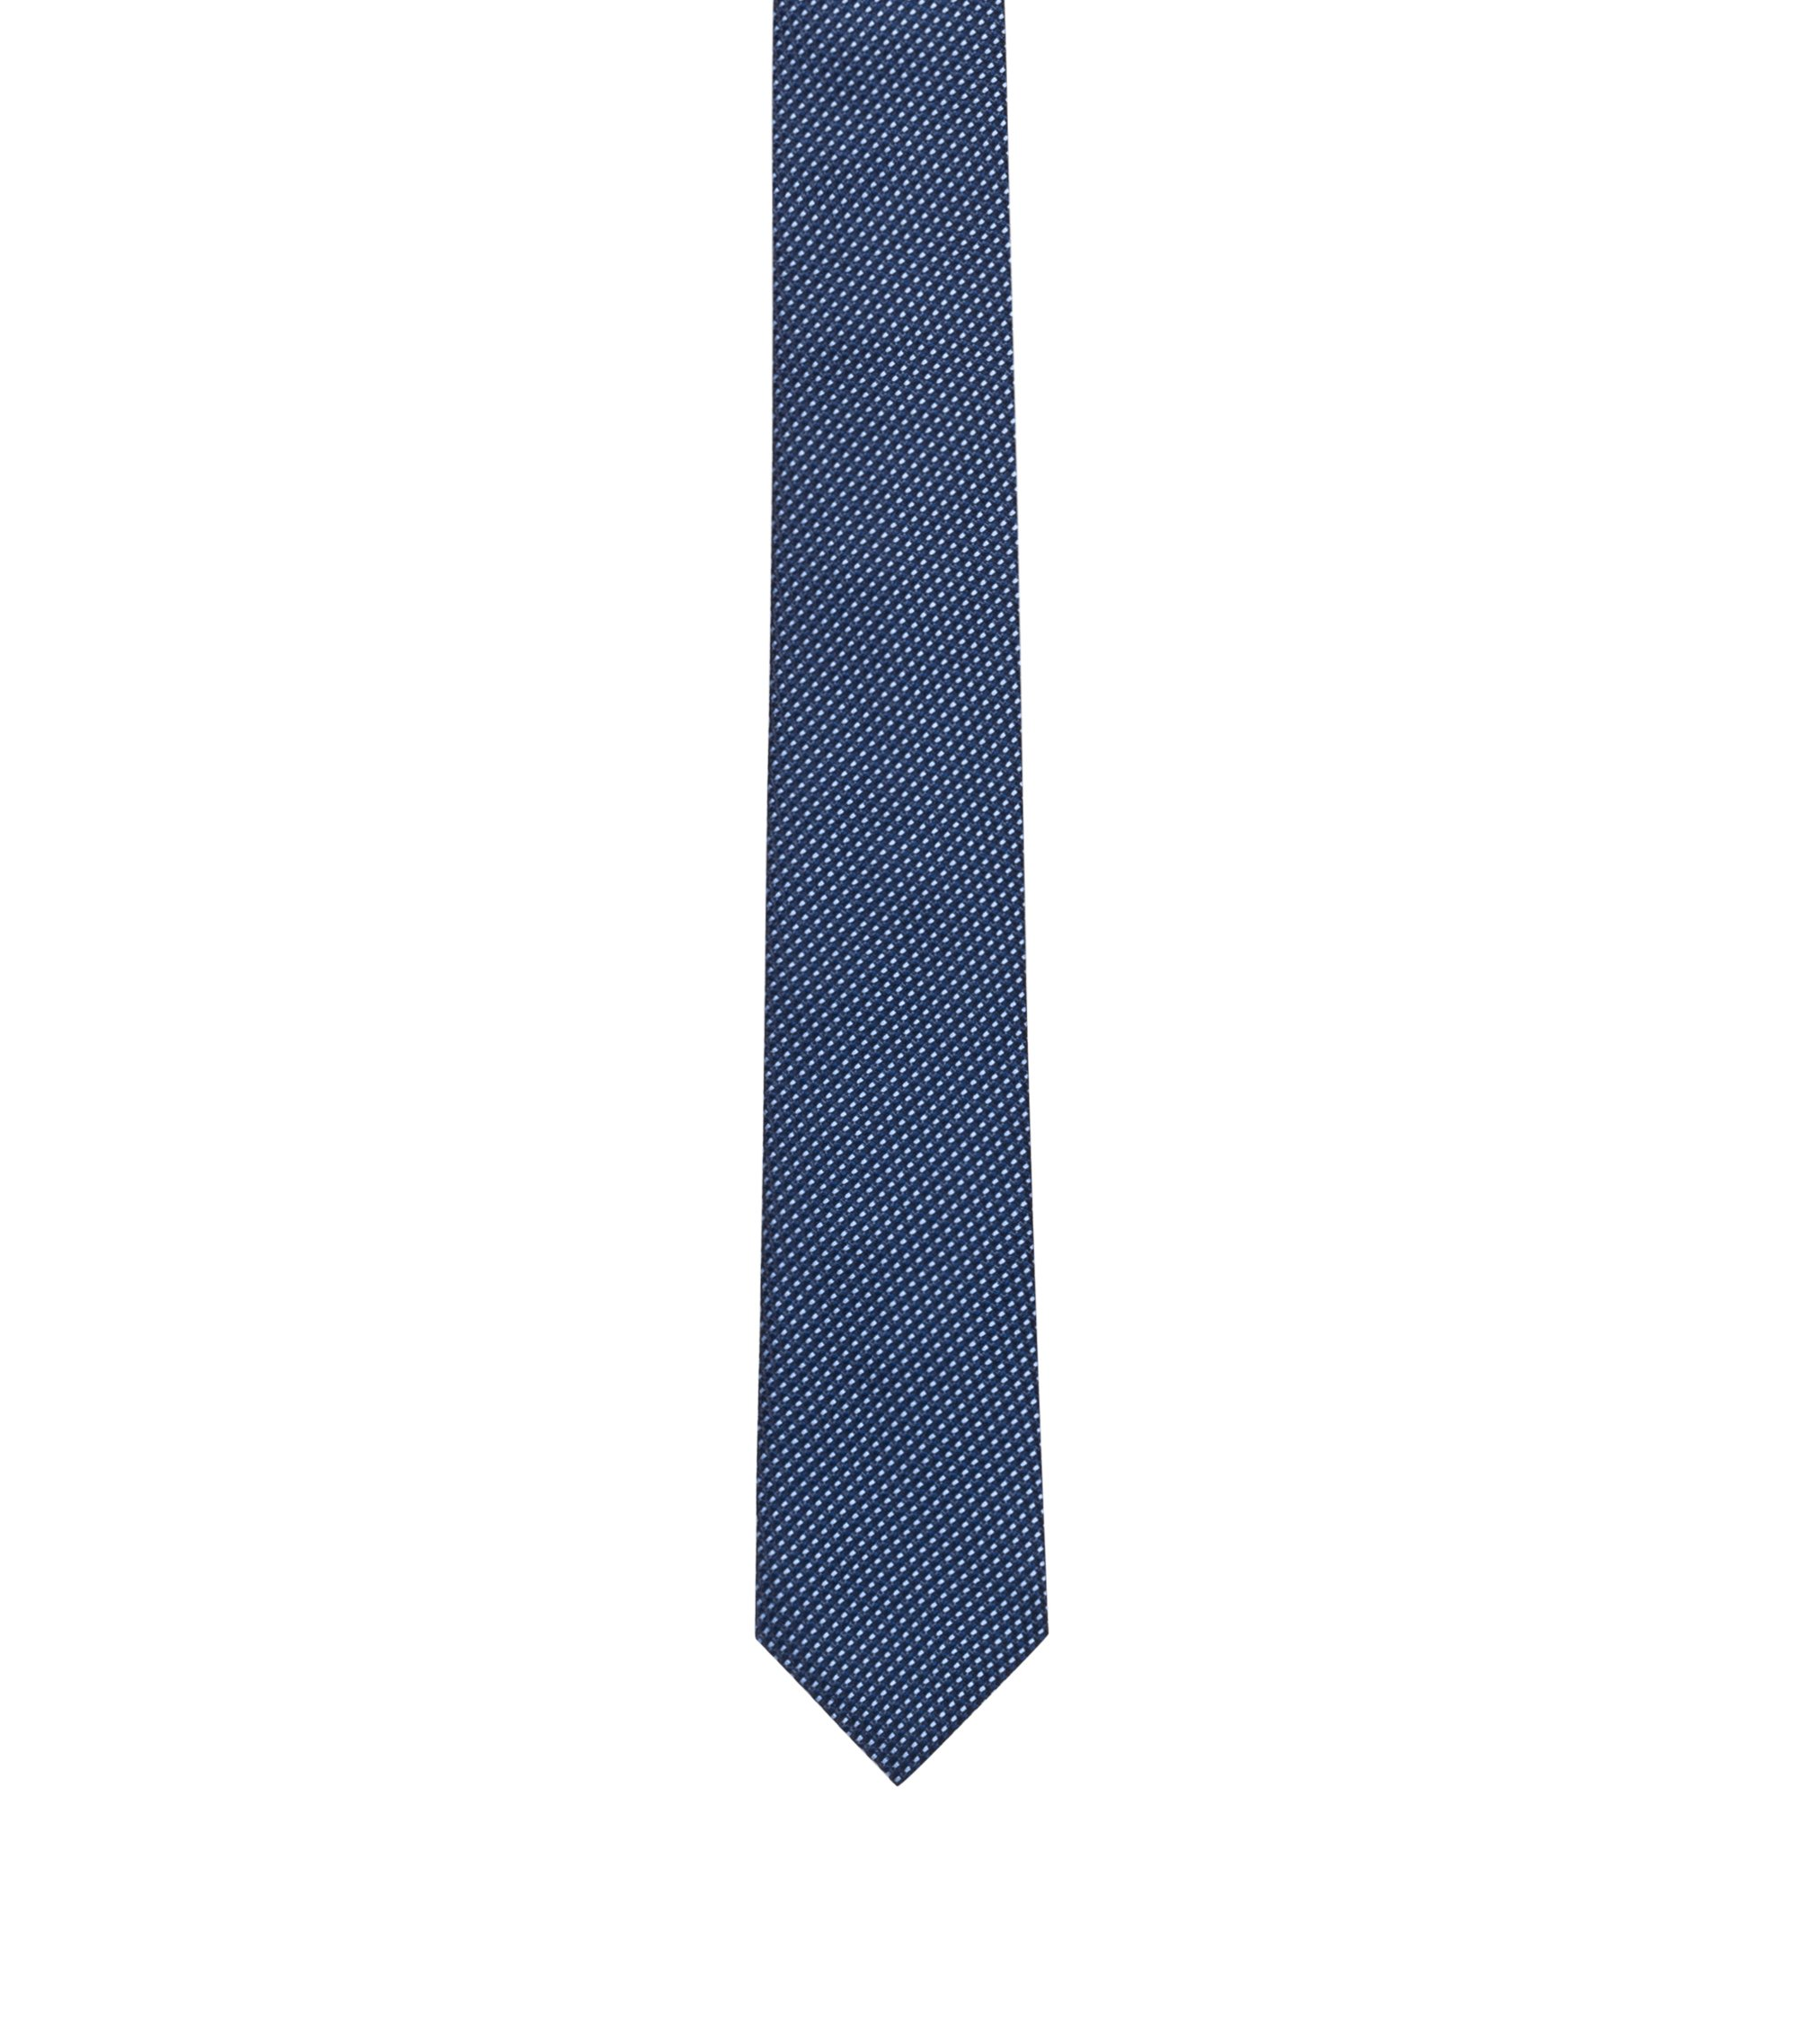 Silk tie with jacquard micro pattern, Dark Blue